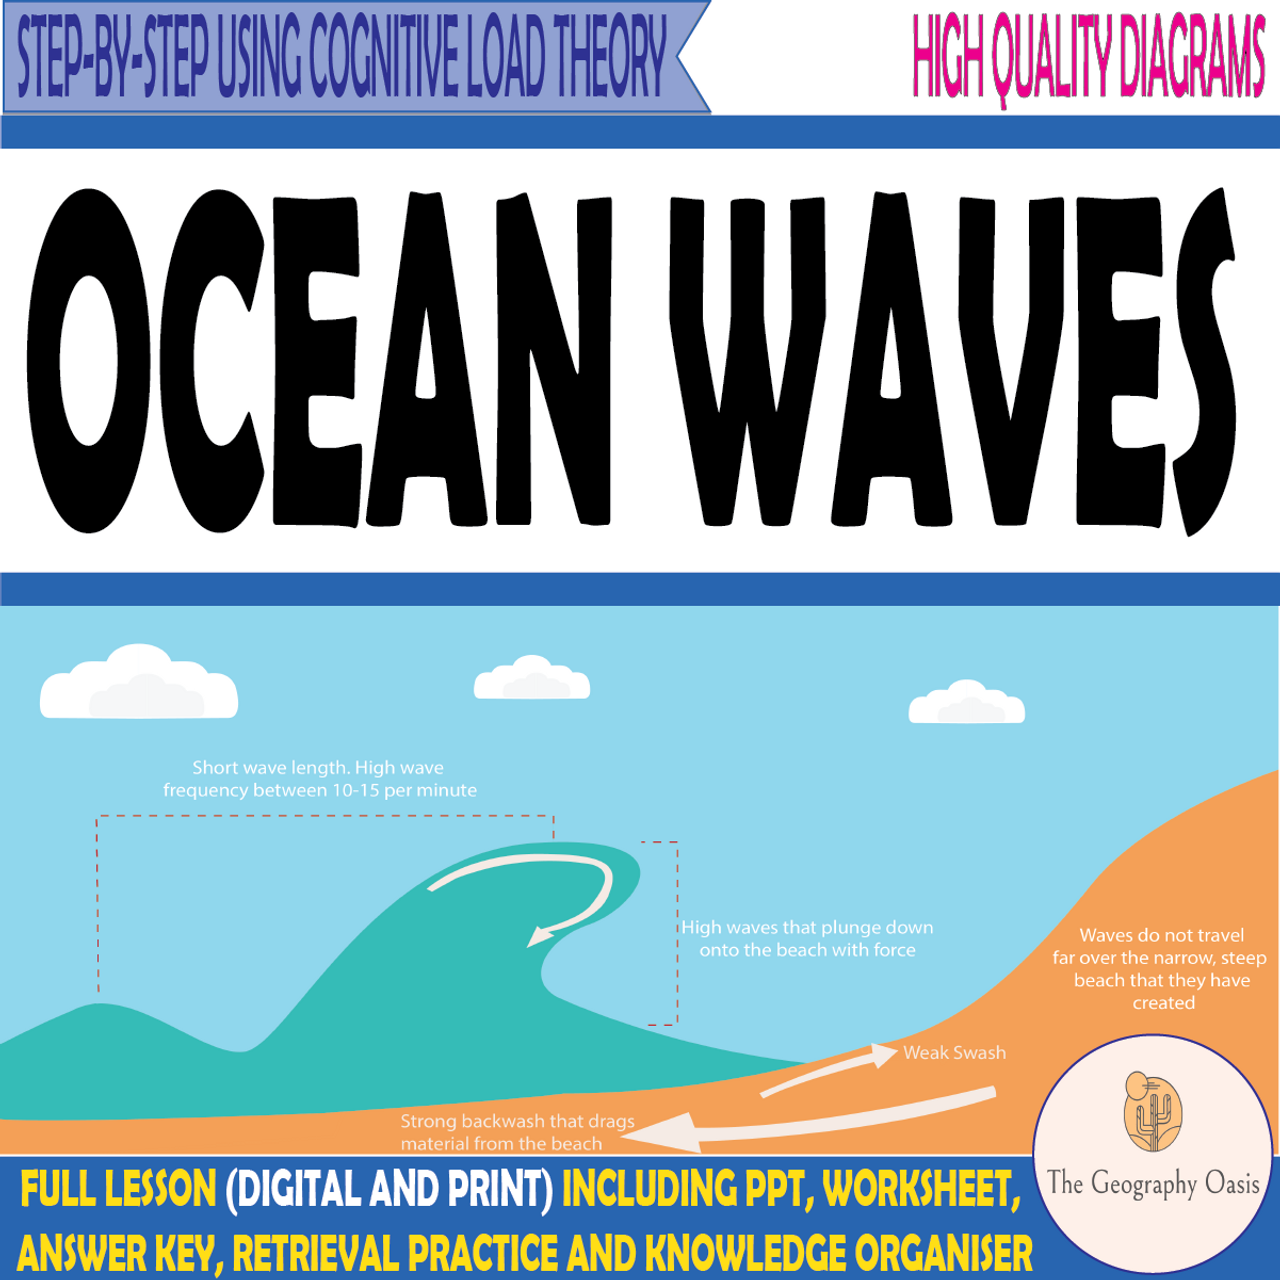 Coastal Waves- Constructive and Destructive Waves - FREE